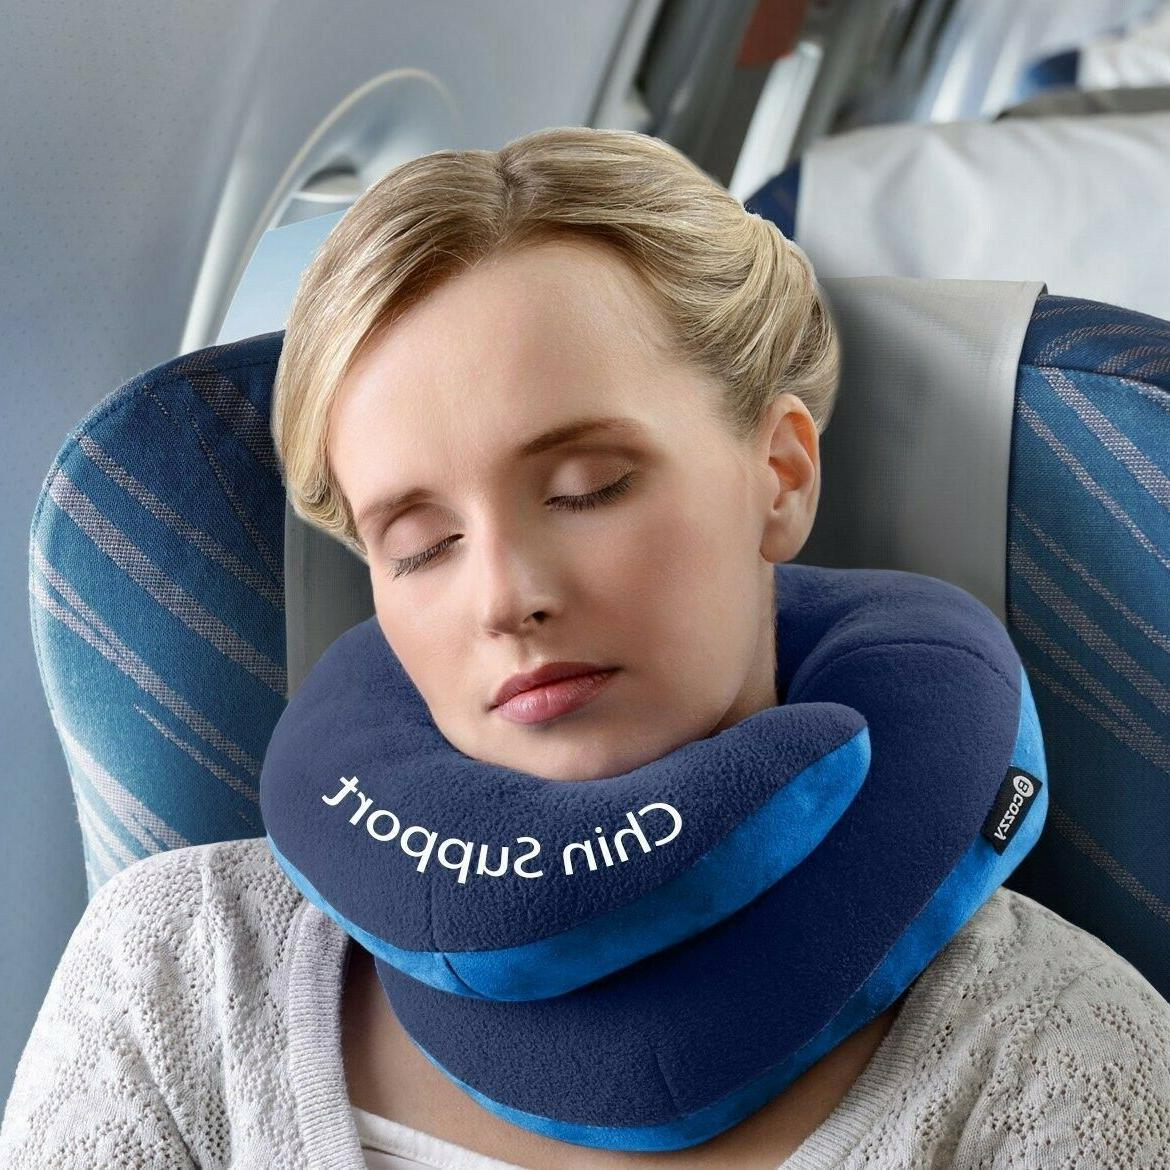 Travel Pillow Prevents The Head